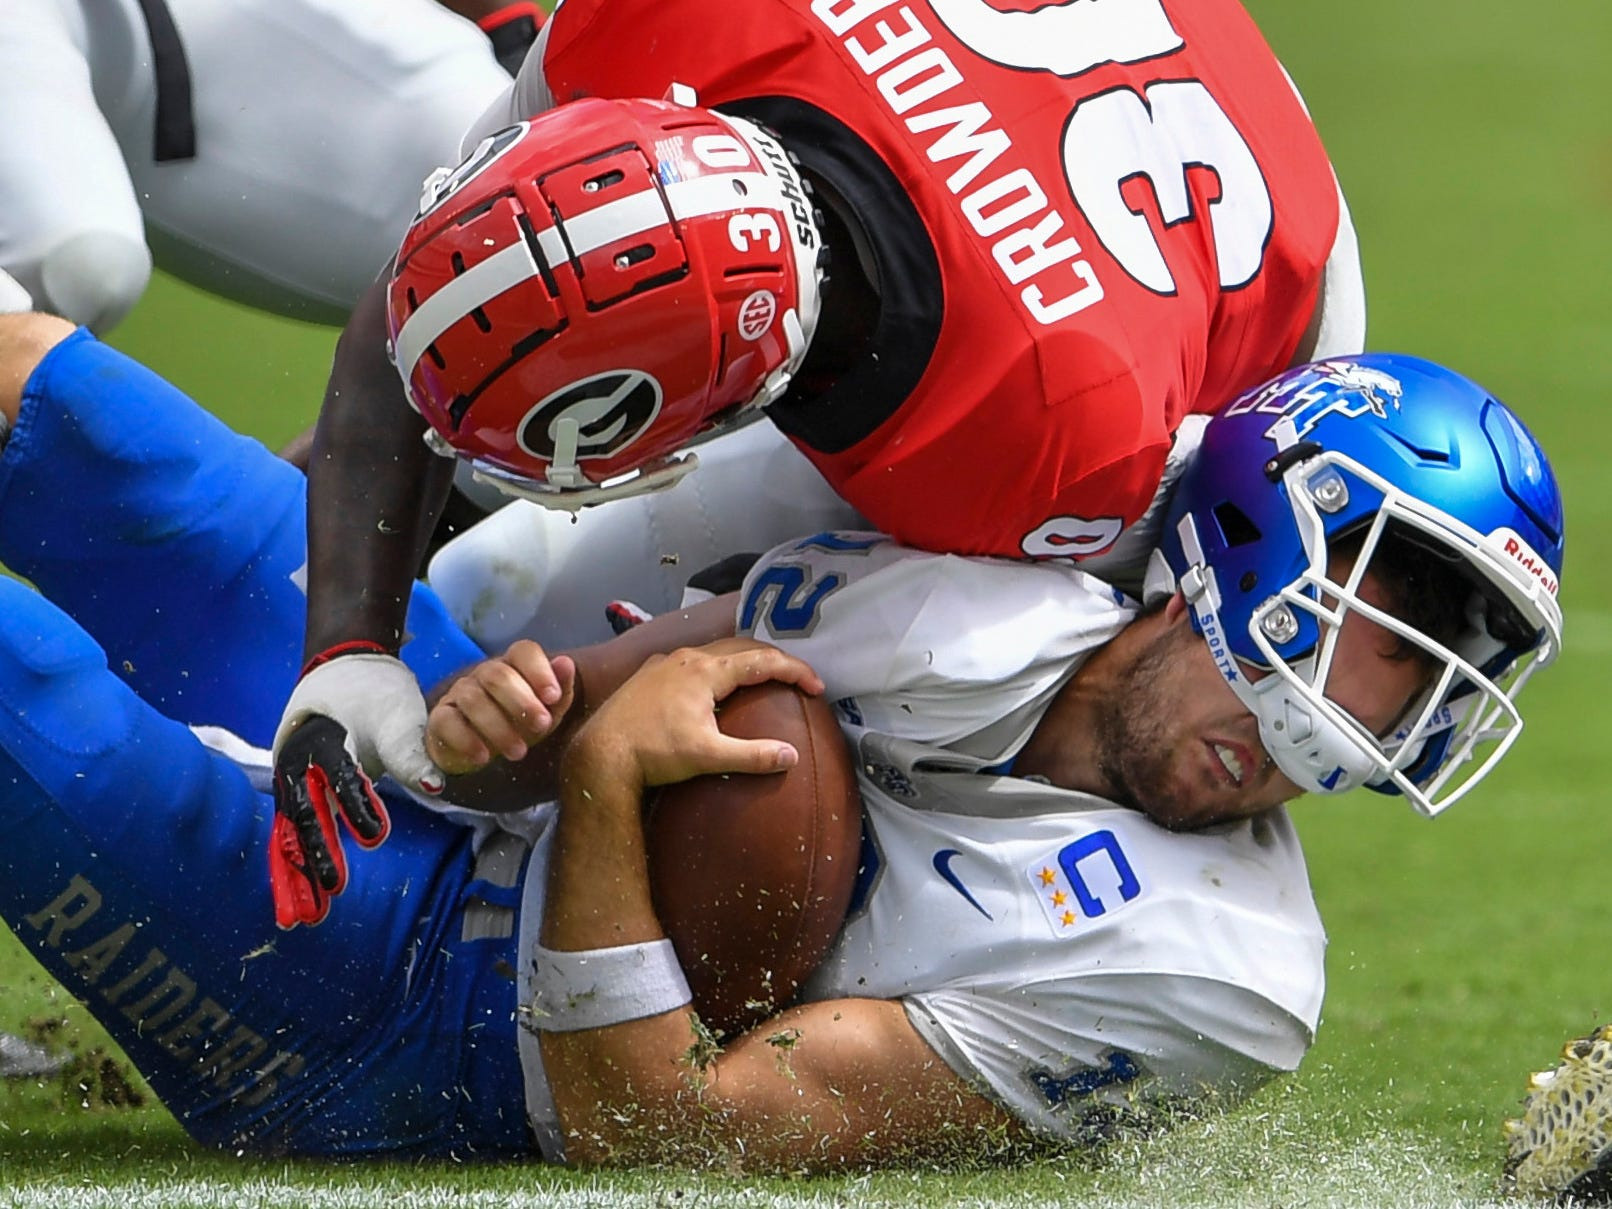 Georgia Bulldogs linebacker Tae Crowder (30) tackles Middle Tennessee Blue Raiders quarterback Brent Stockstill (12) during the second half at Sanford Stadium.